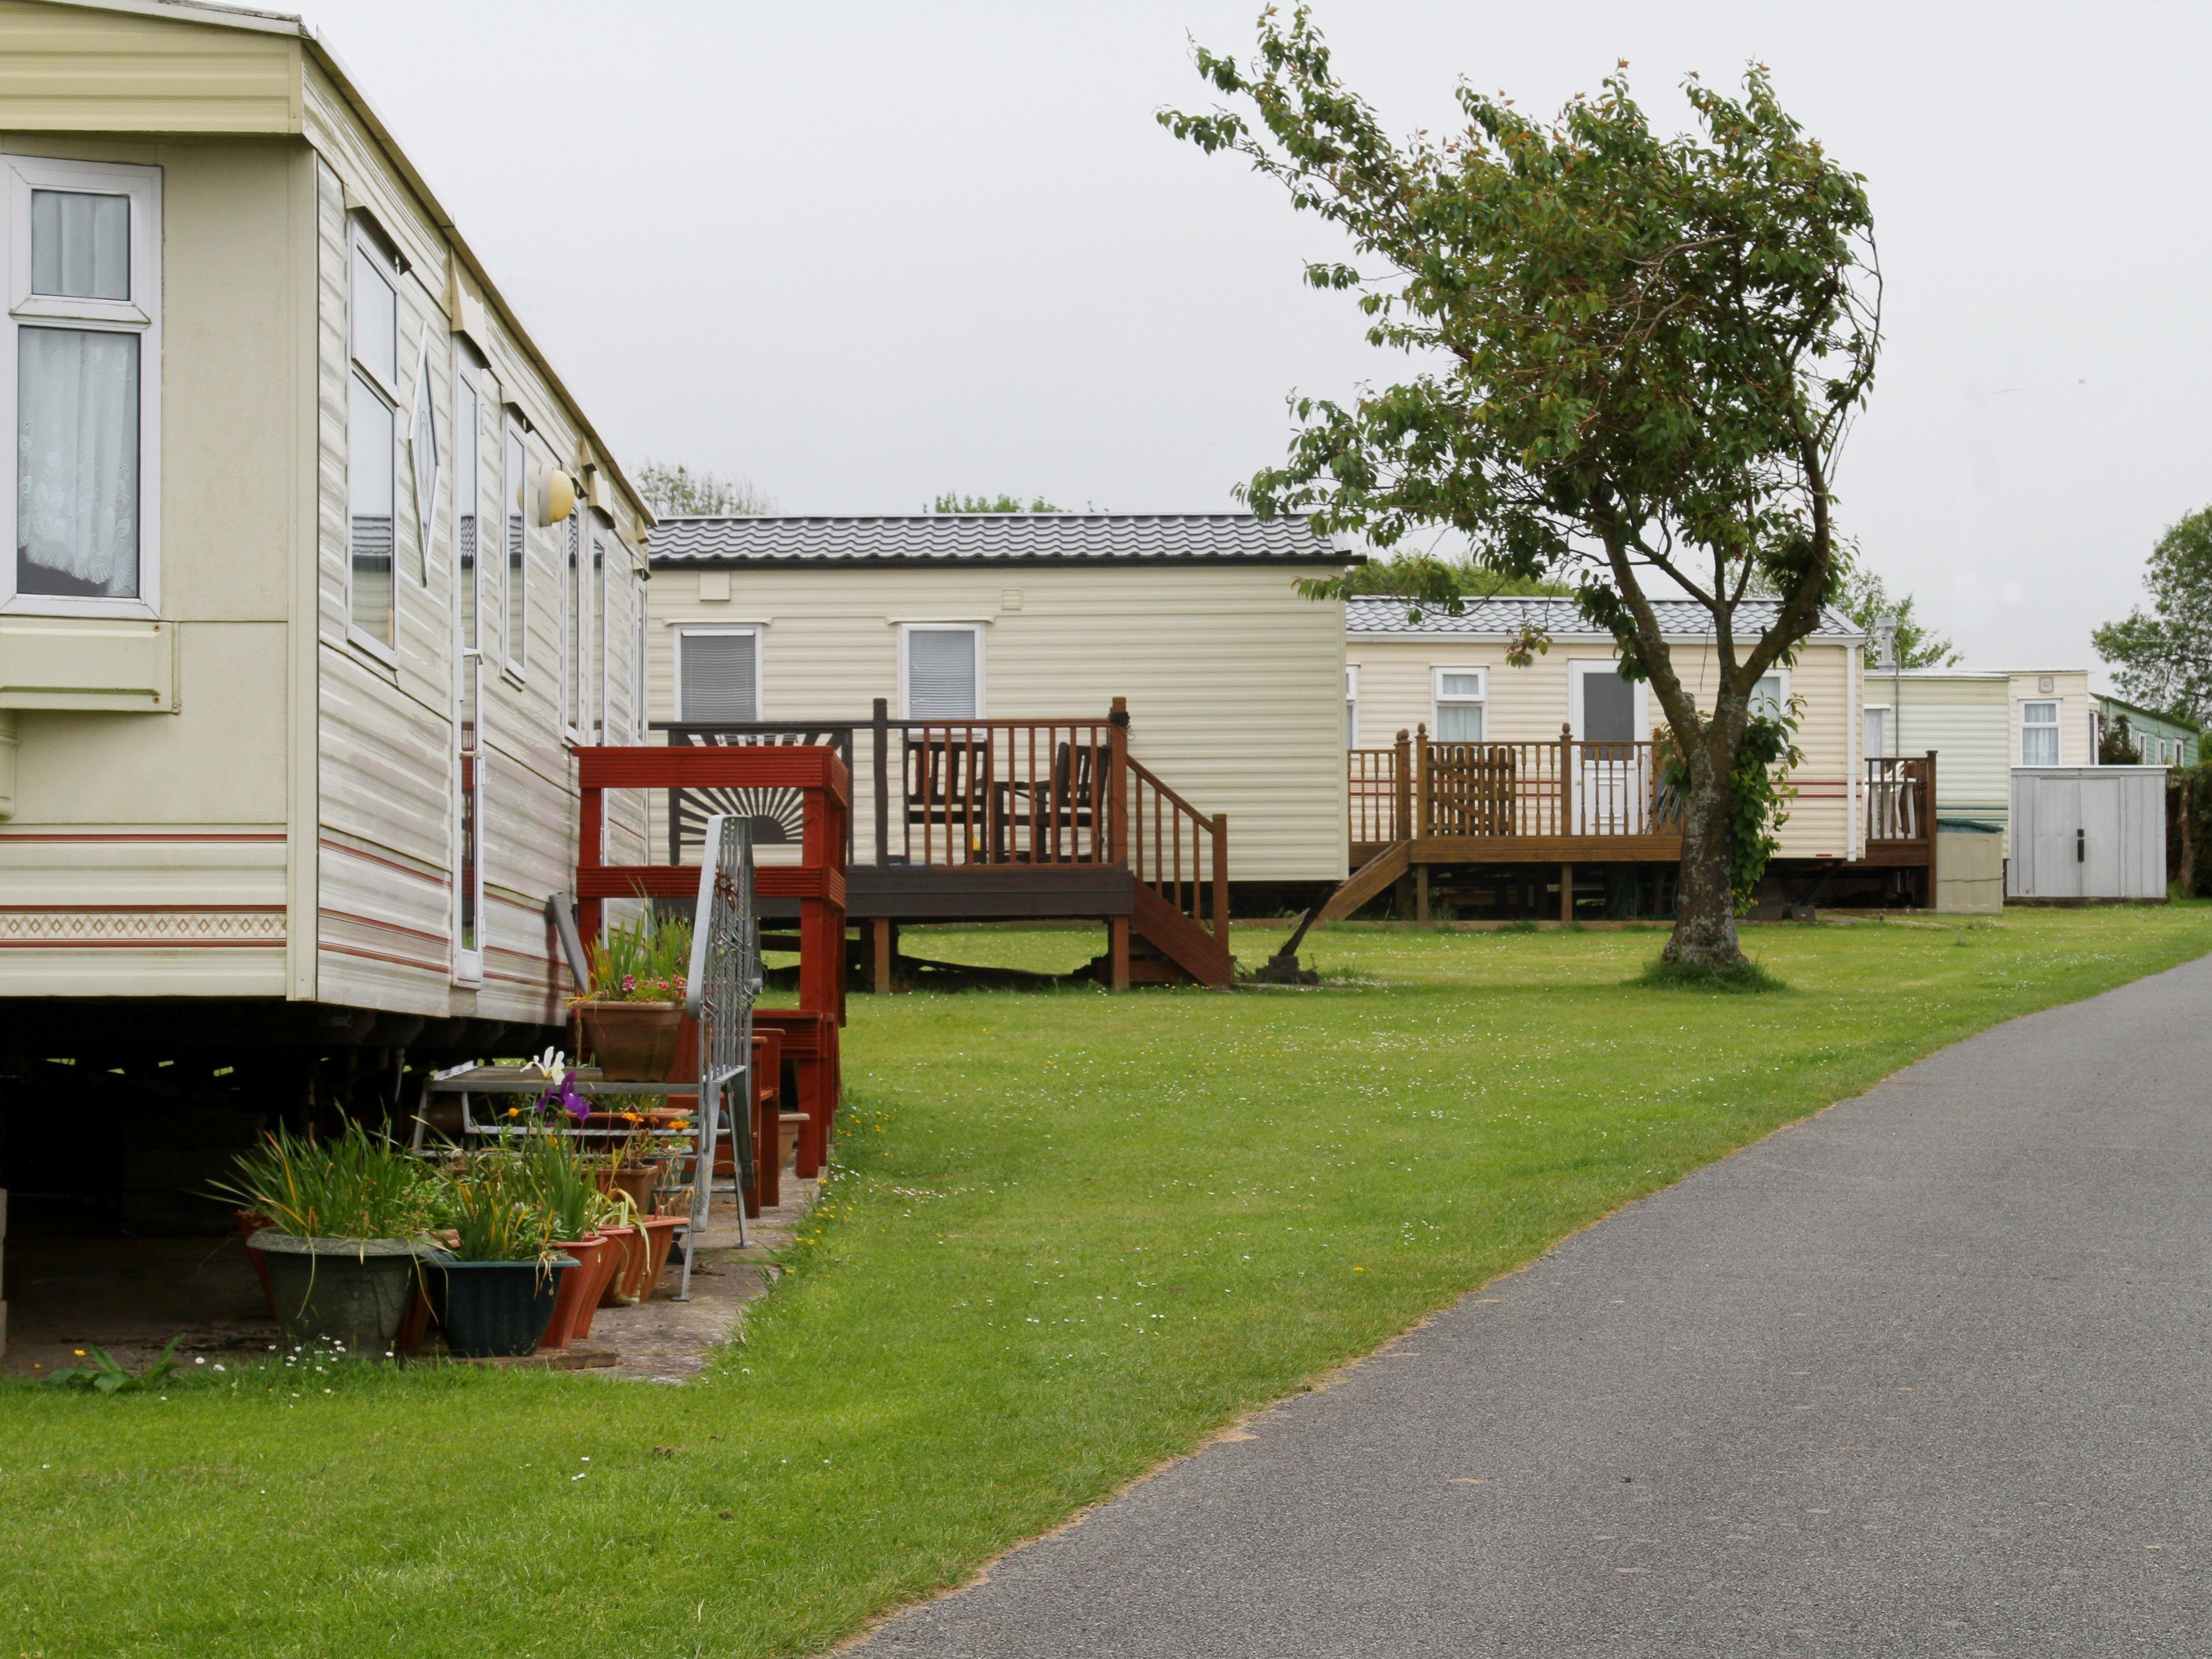 How to shut off the main water supply in a mobile home